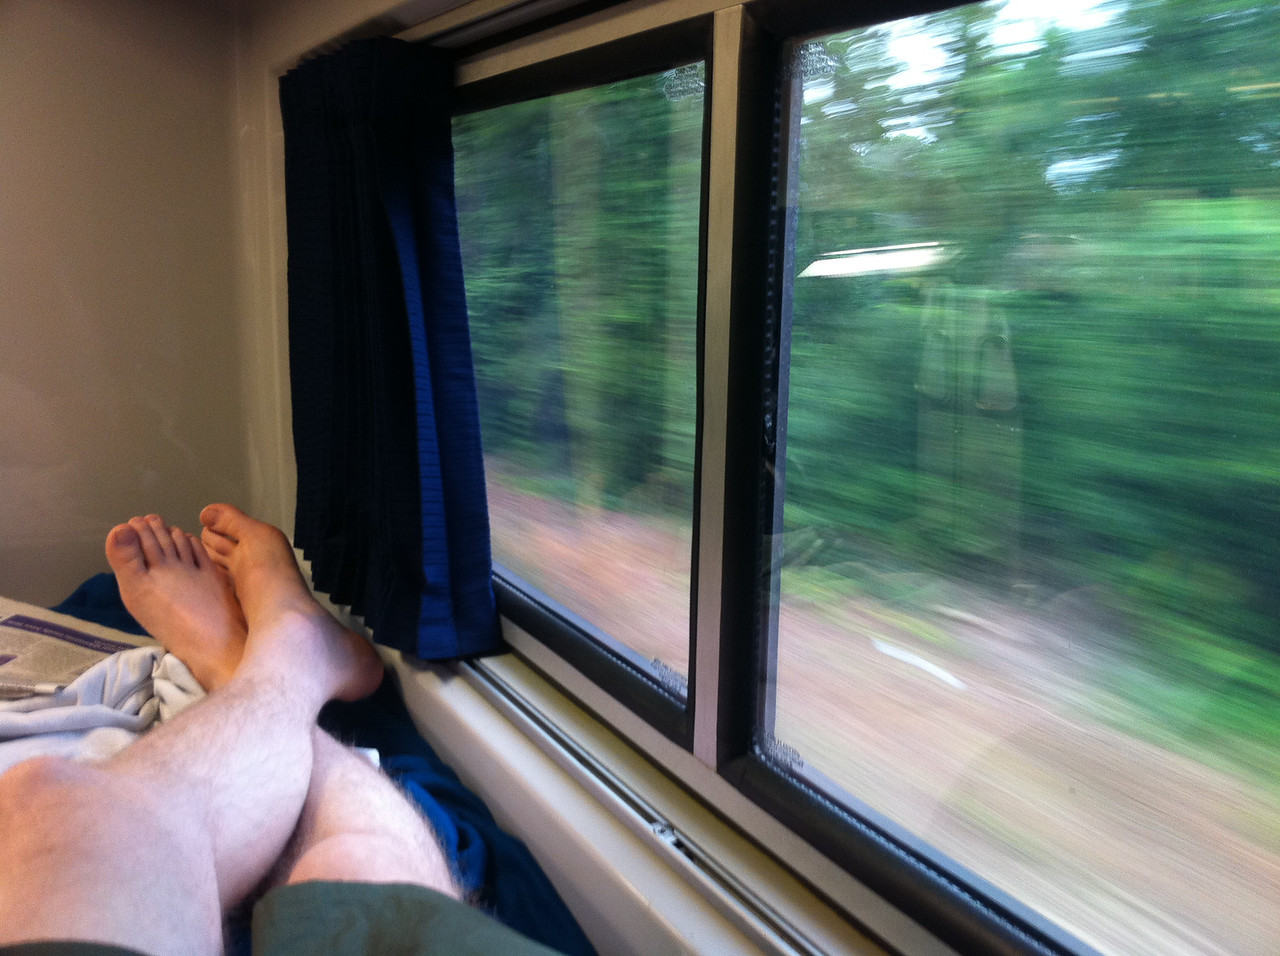 Lounging on the train